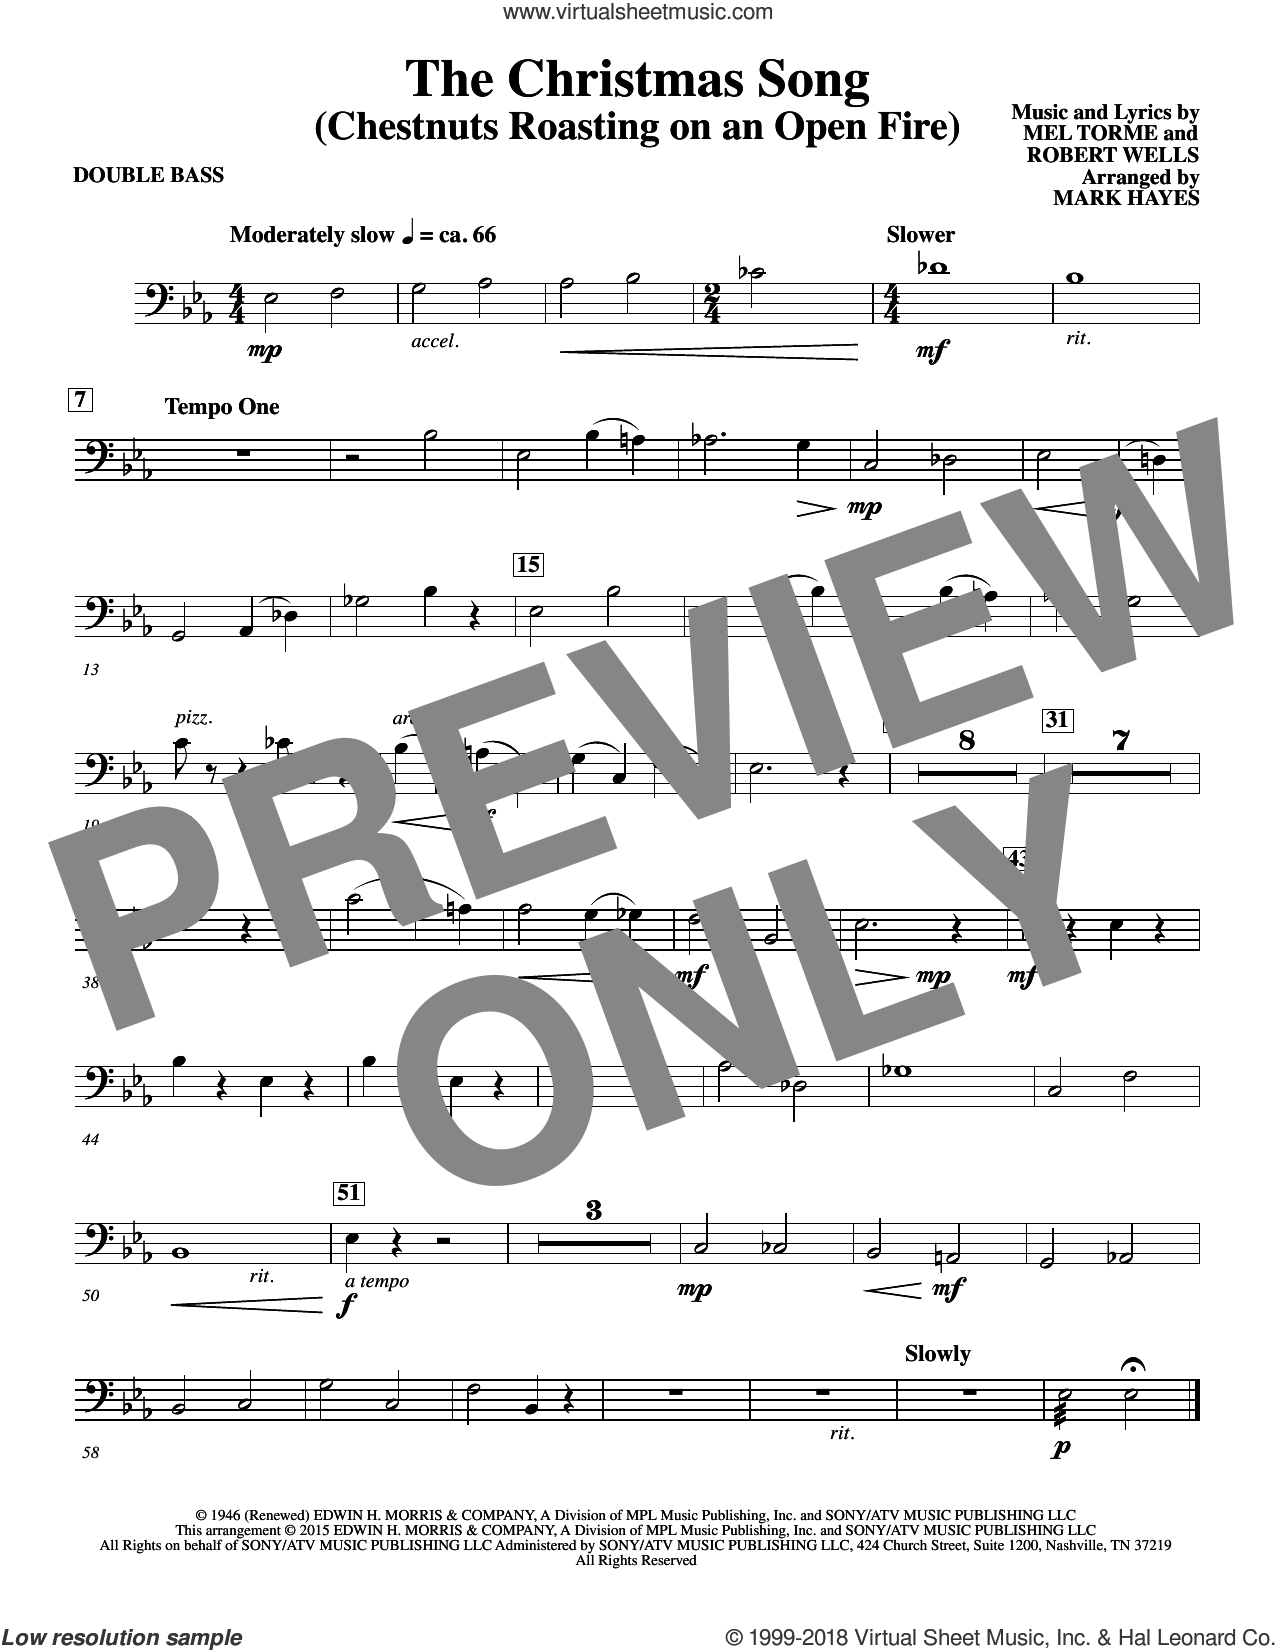 The Christmas Song (Chestnuts Roasting On An Open Fire) sheet music for orchestra/band (double bass) by Mel Torme, Mark Hayes, Clay Crosse, King Cole Trio, Nat Cole with N. Riddle Orch., Mel Torme and Robert Wells, intermediate skill level